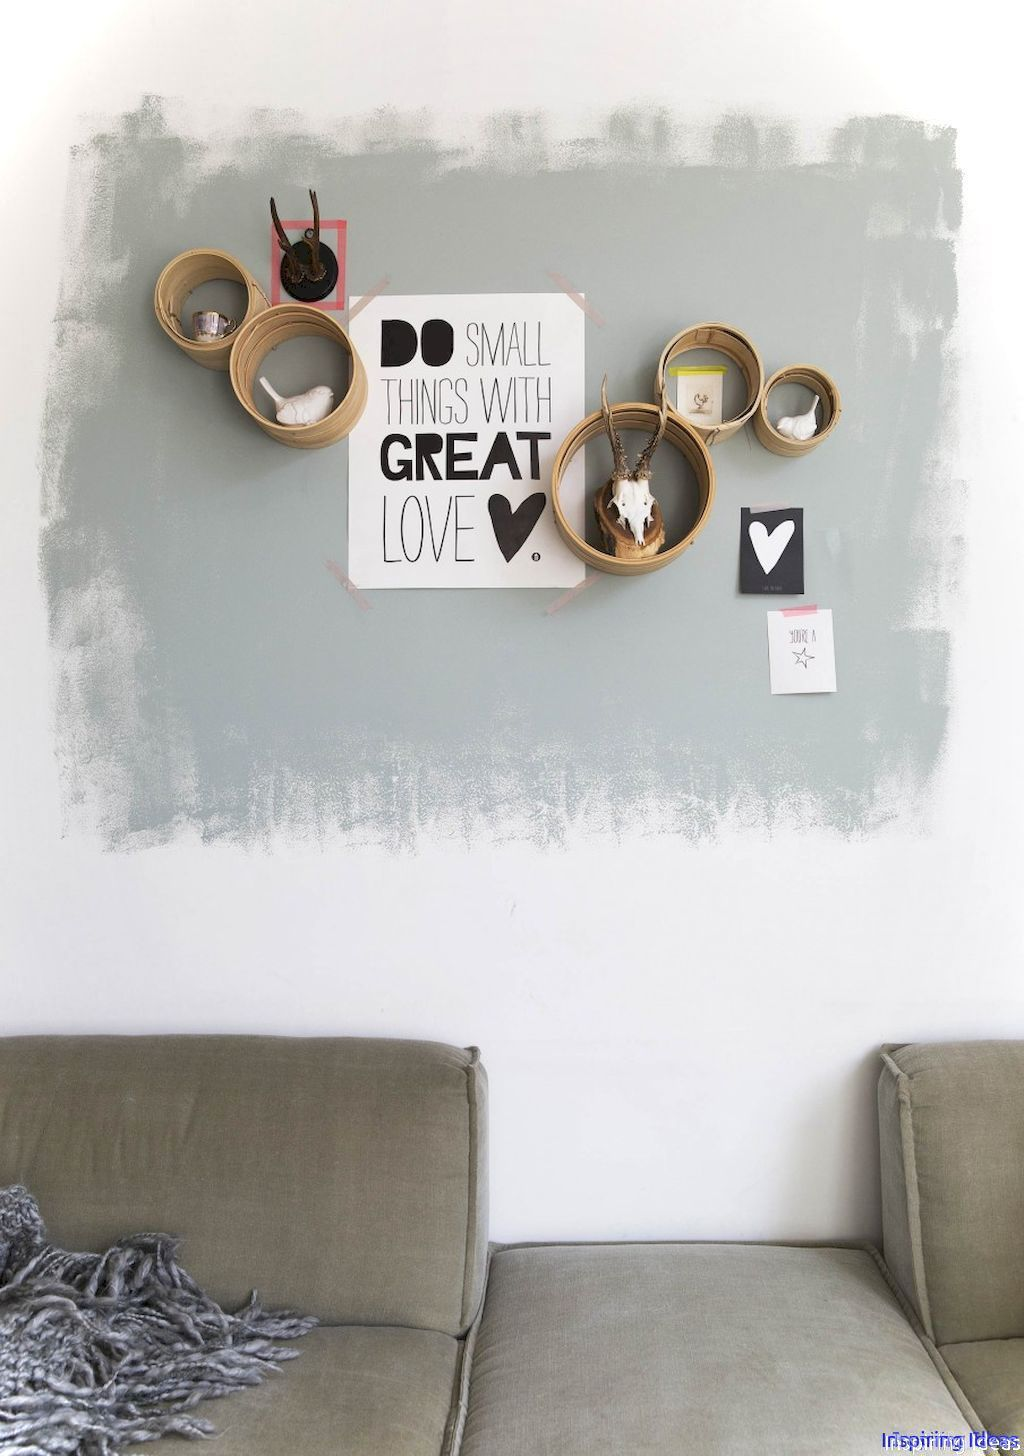 Artsy wall painting ideas for your home 18 | Wall paintings, Artsy ...